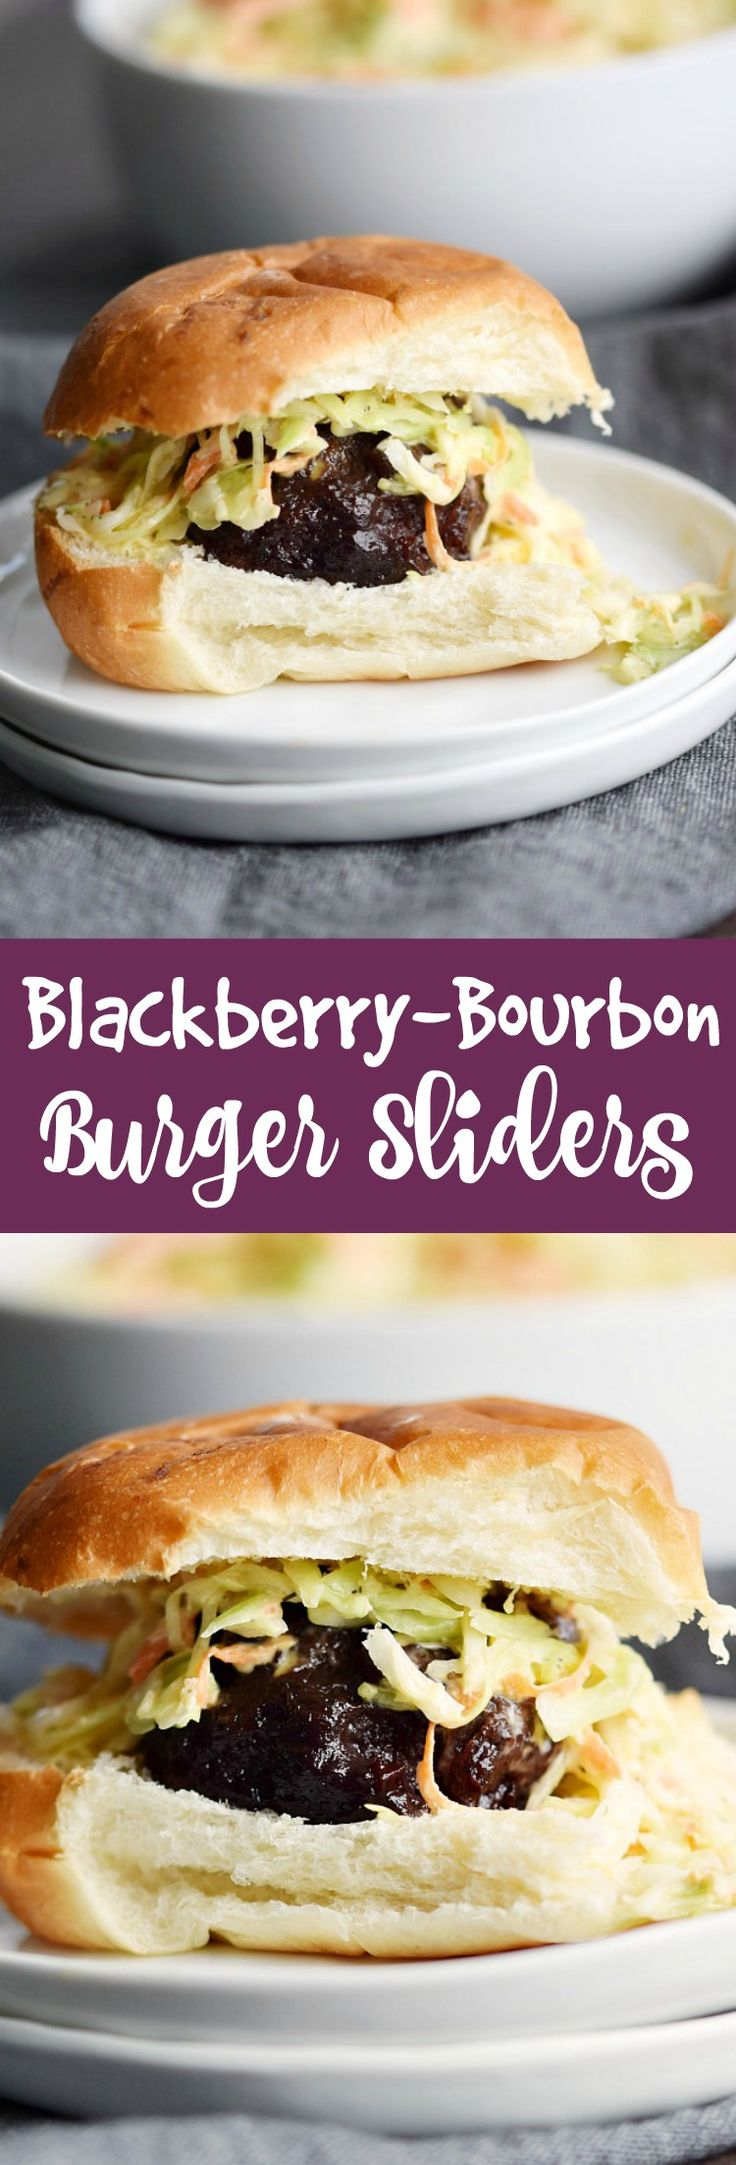 Blackberry-Bourbon Burger Sliders topped with Creamy Coleslaw are guaranteed to become a party guest favorite at your next party! #appetizers #holidayfood #partyfood #gameday via @cookwithcurls